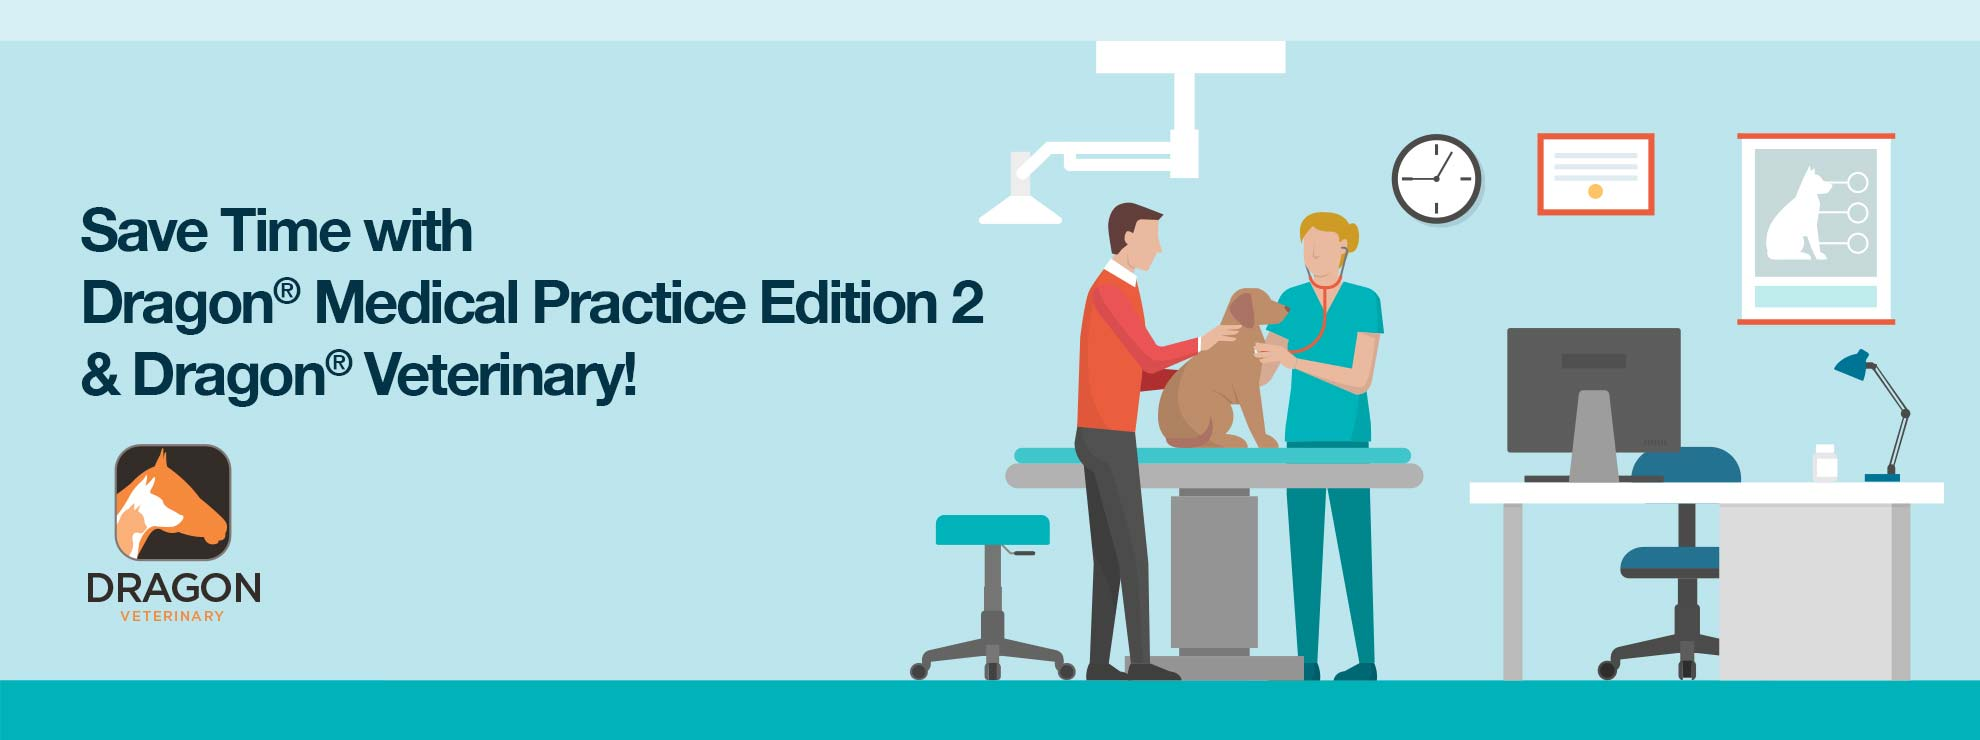 Save time with Dragon Medical Practice Edition 2 and Dragon Veterinary